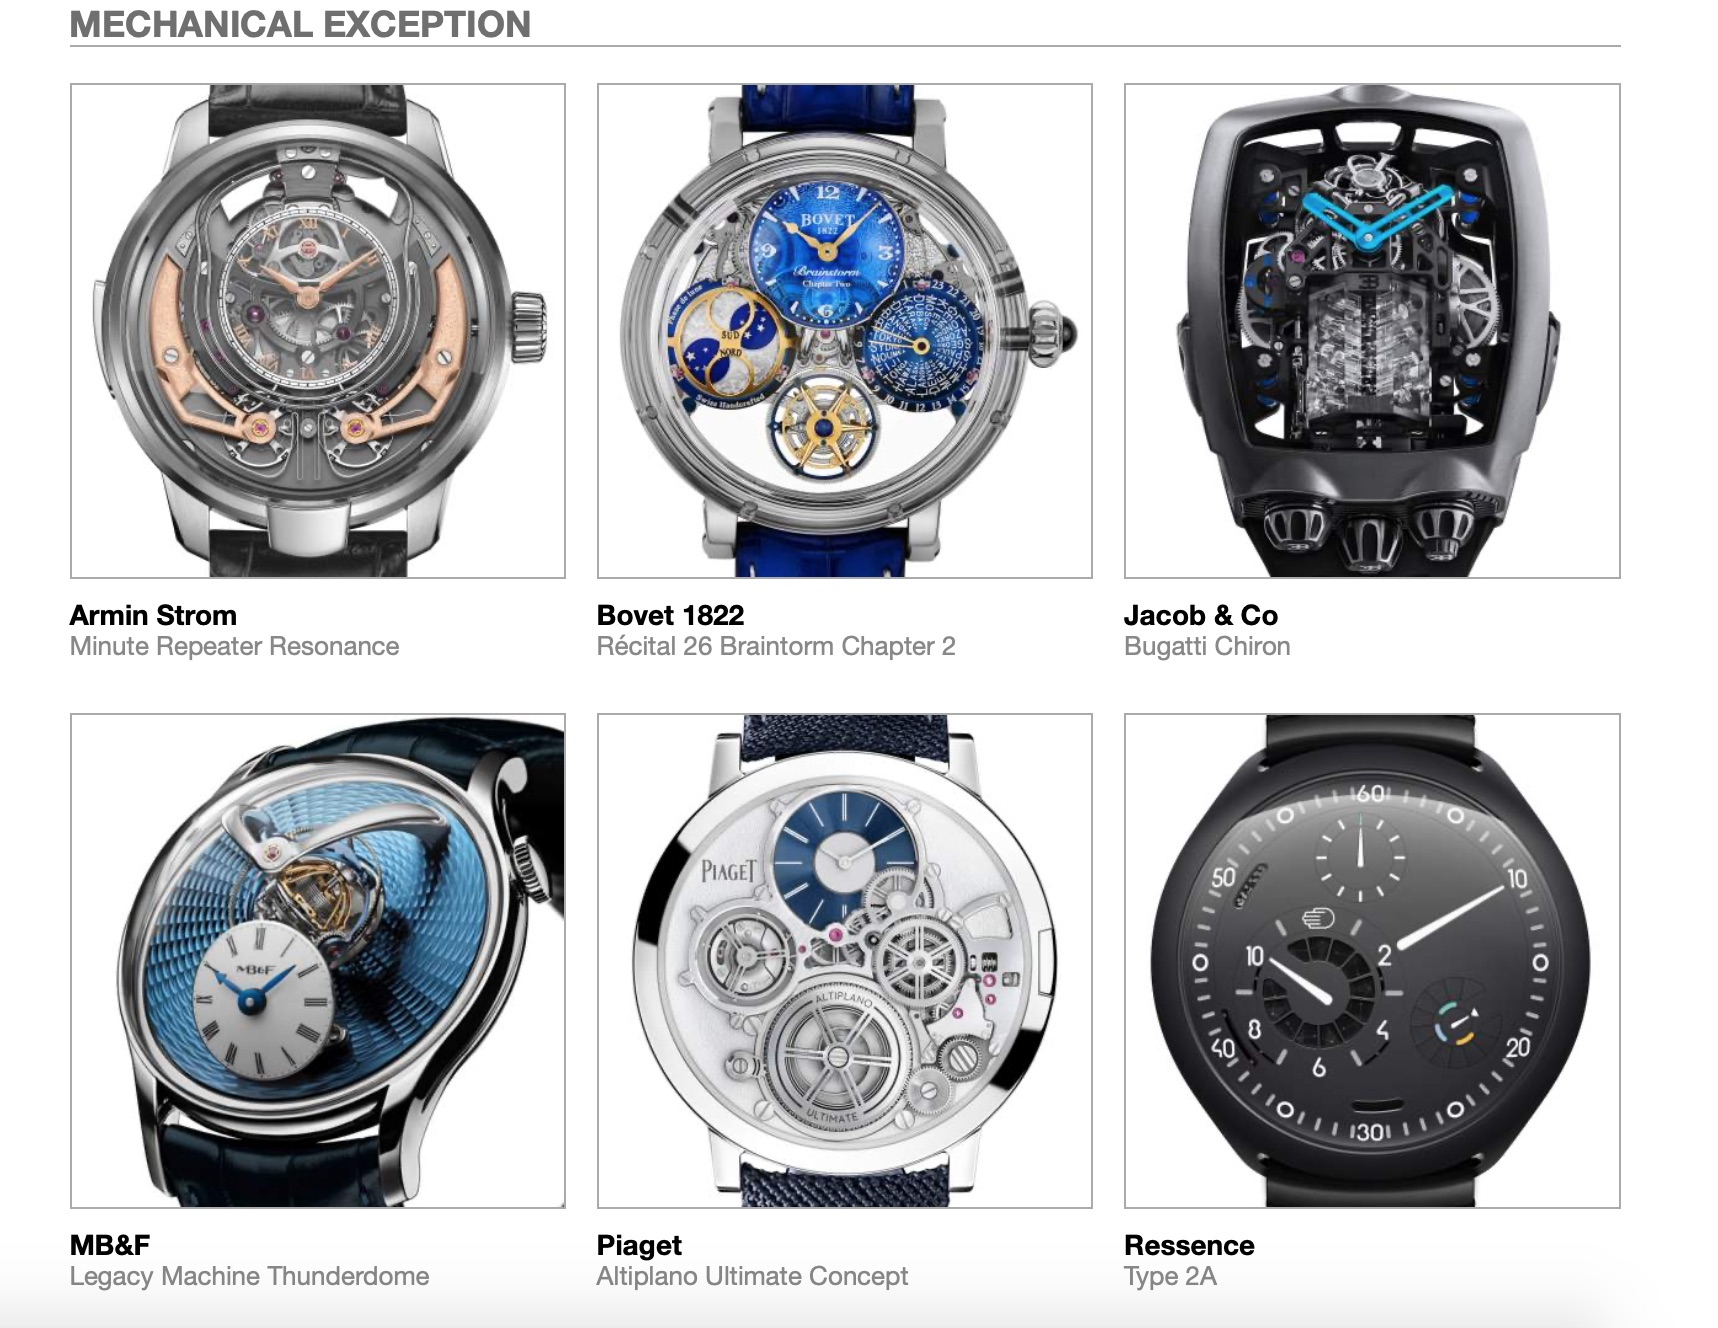 Grand Prix d'Horlogerie de Genève GPHG Academy Nominated Watches 2020 Mechanical Exception